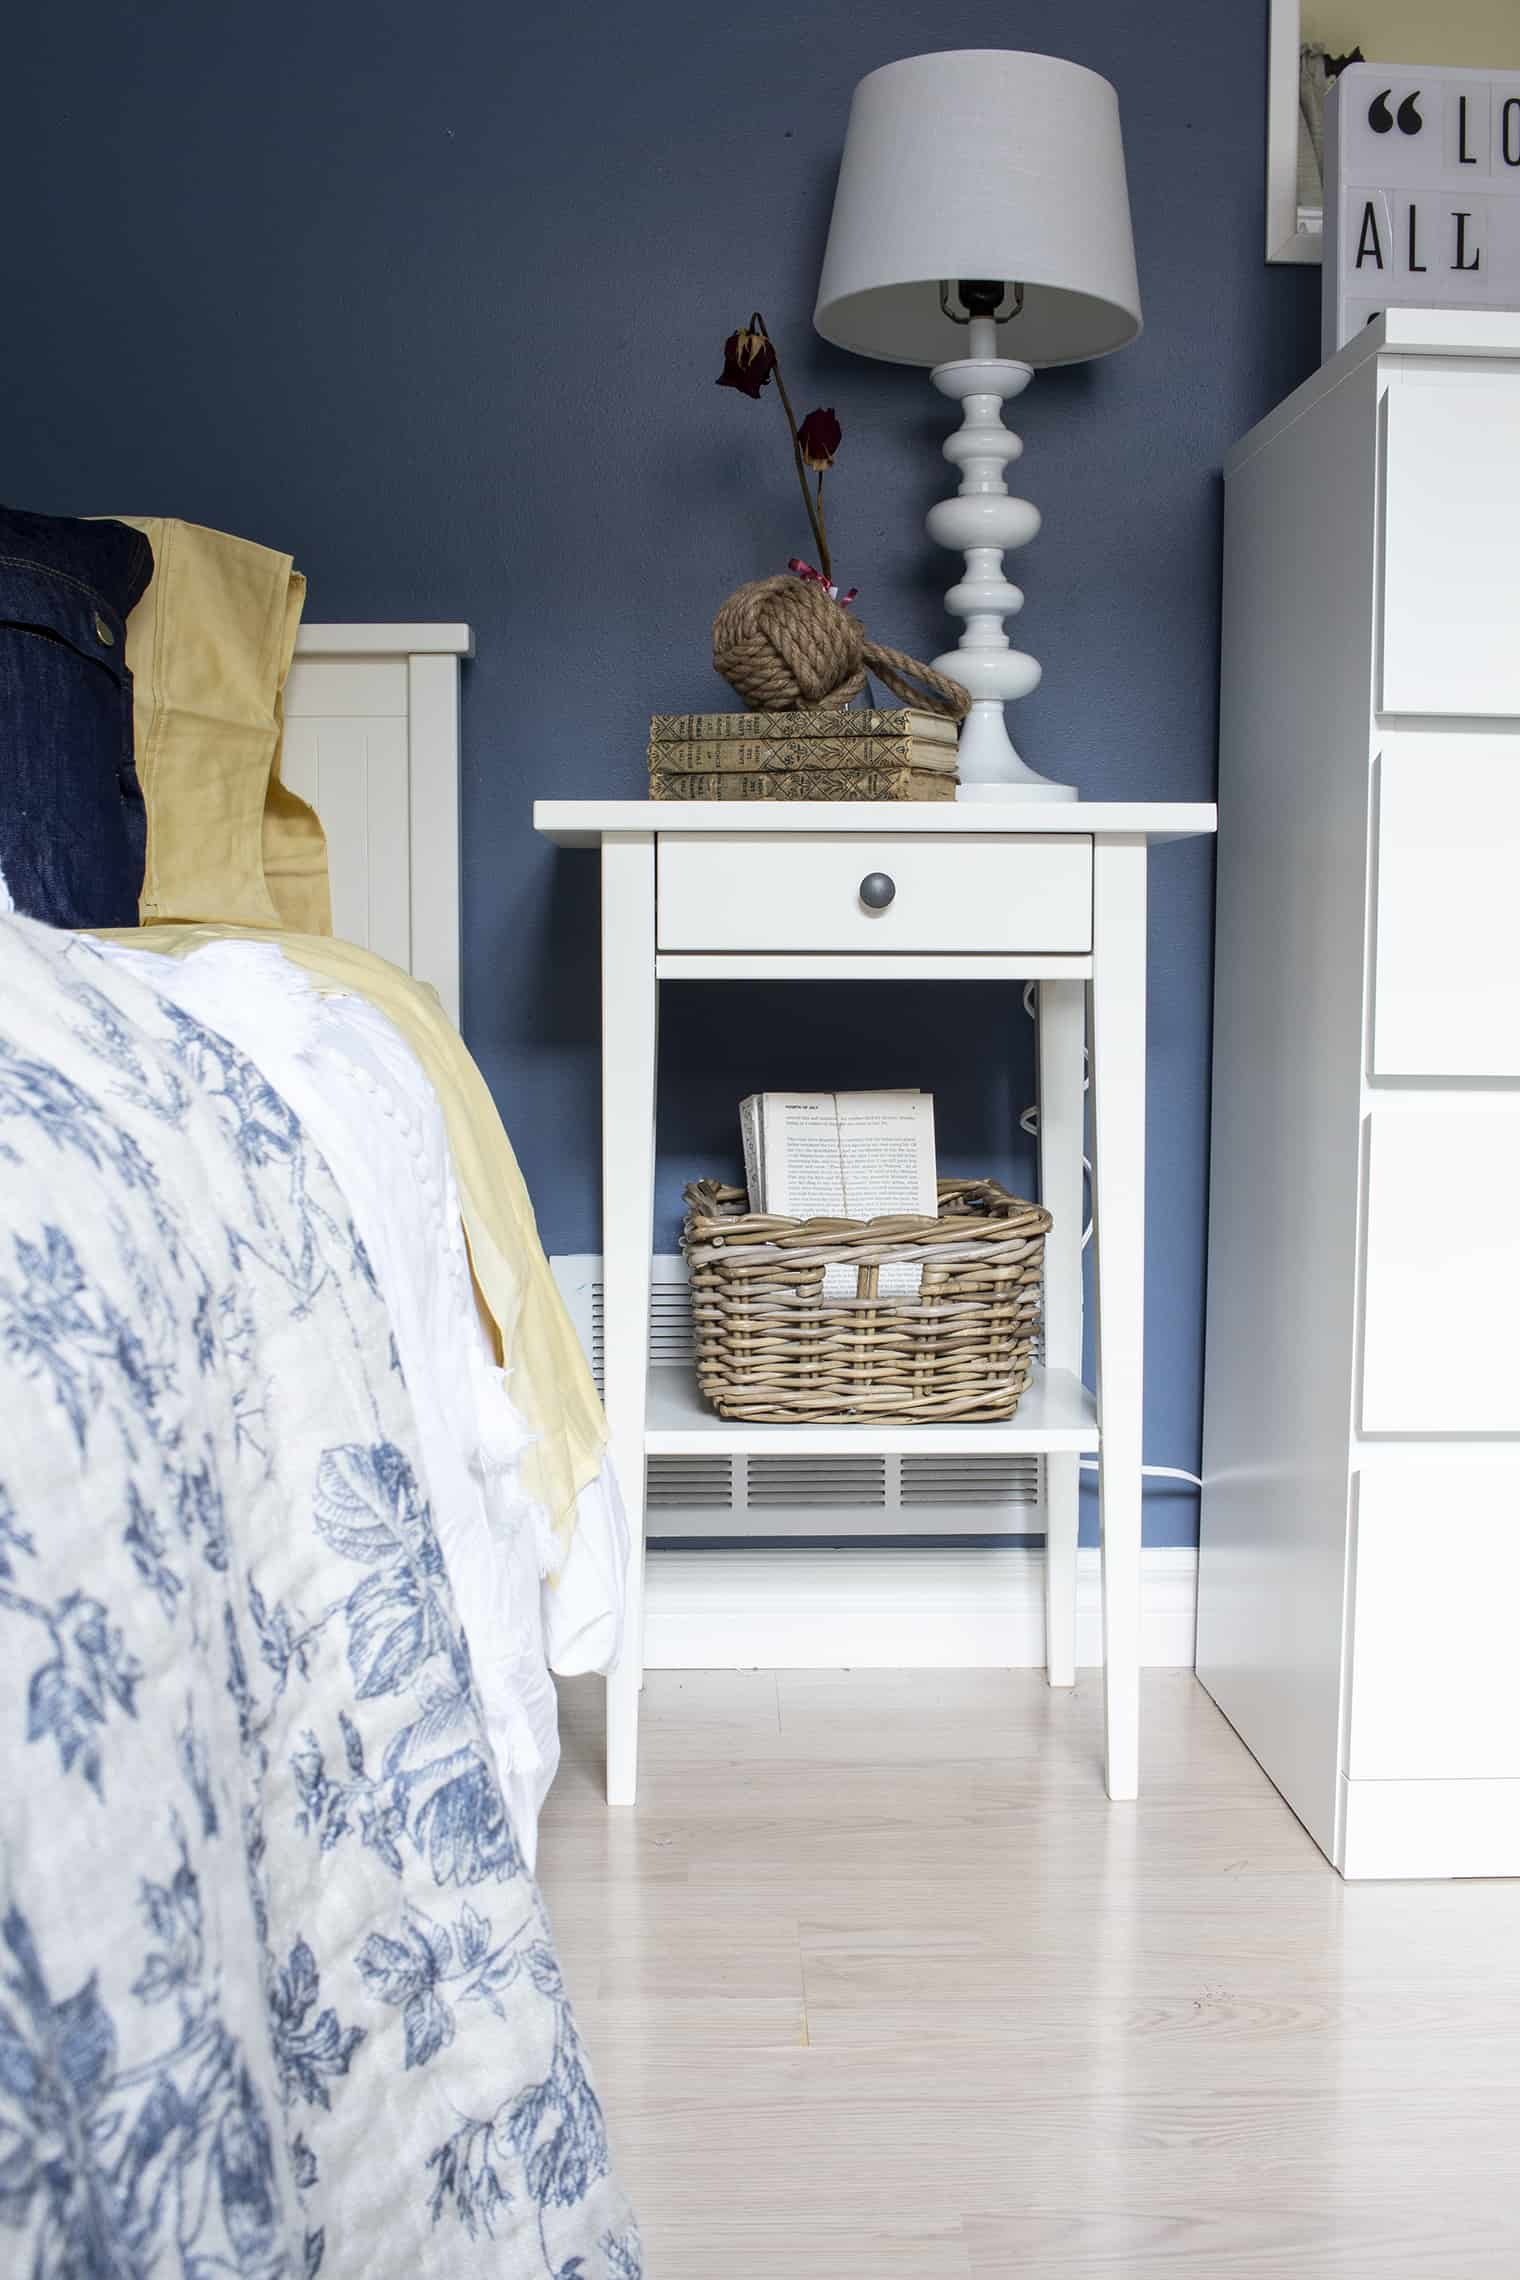 white bedroom nightstand with blue walls and yellow sheets to illustrate the 60-30-10 rule